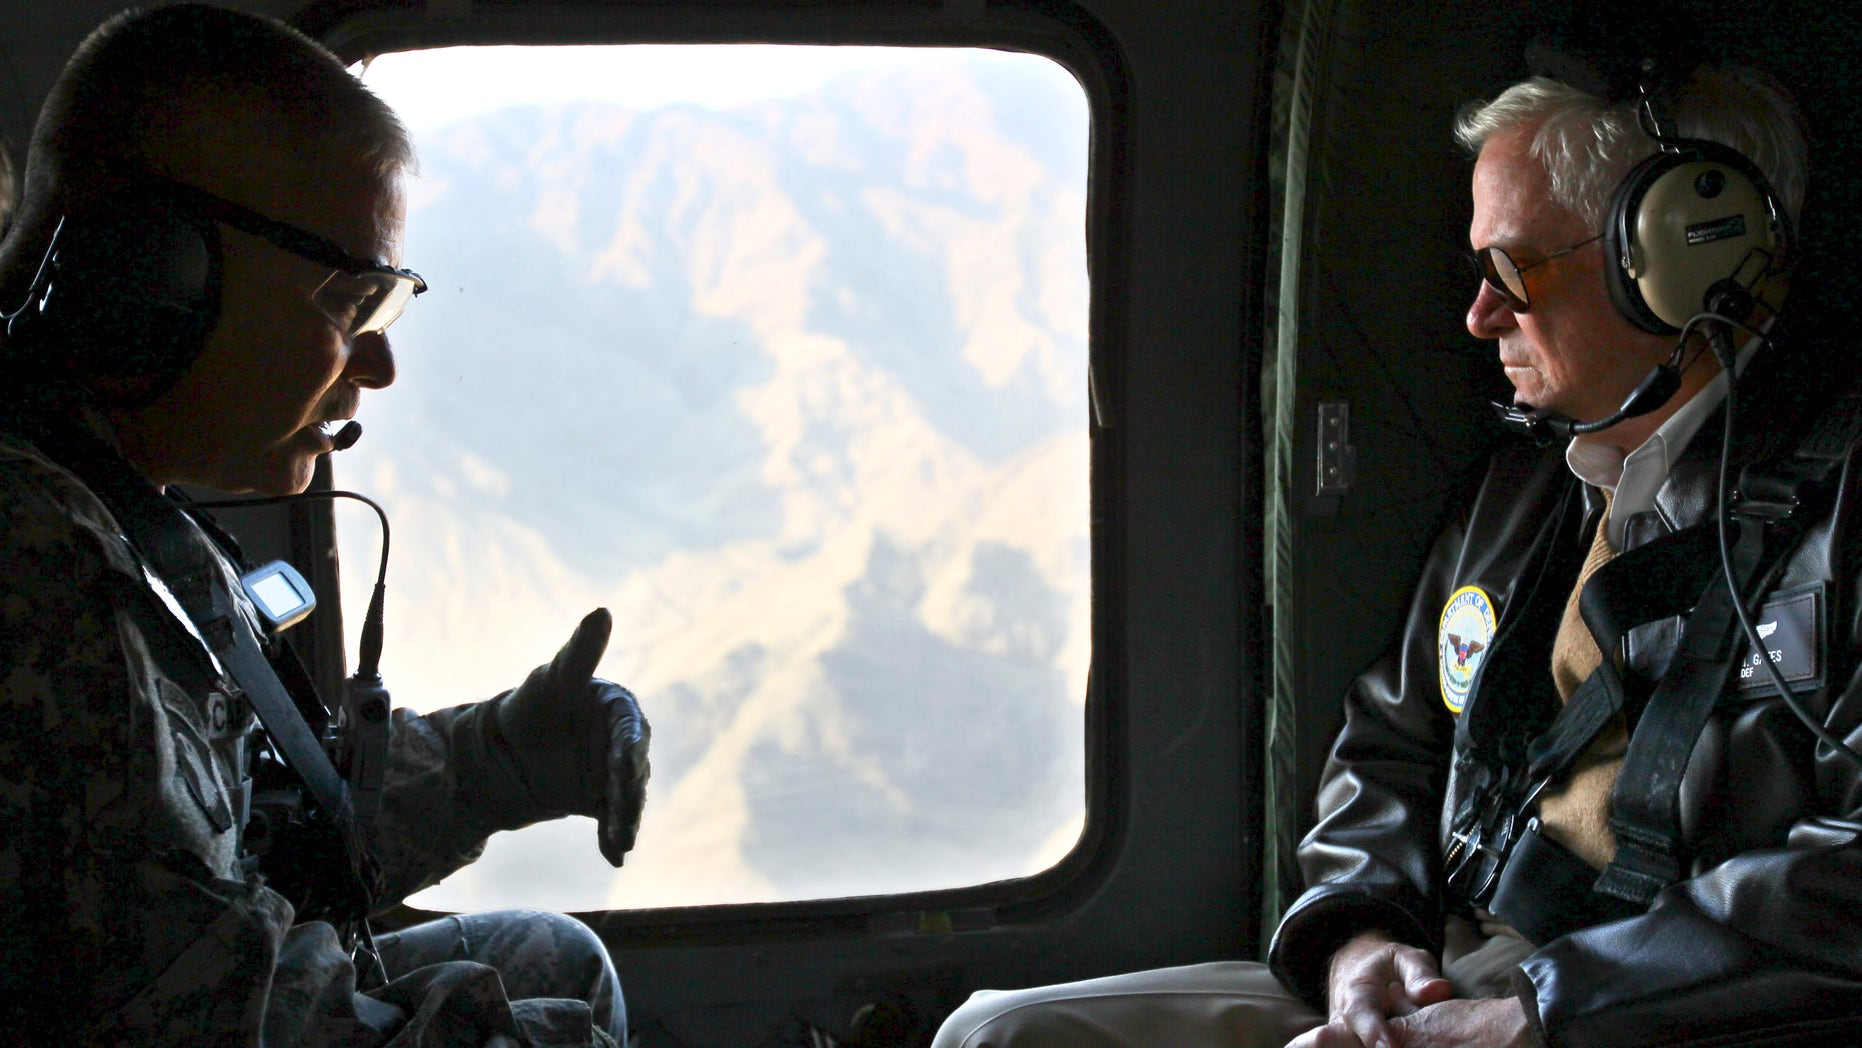 Dec. 7: Defense Secretary Robert Gates, right, receives a briefing from Major Gen. John Campbell, left, as they fly aboard a helicopter over Kunar Province, Afghanistan. The U.S. and NATO predict heavier fighting this winter.